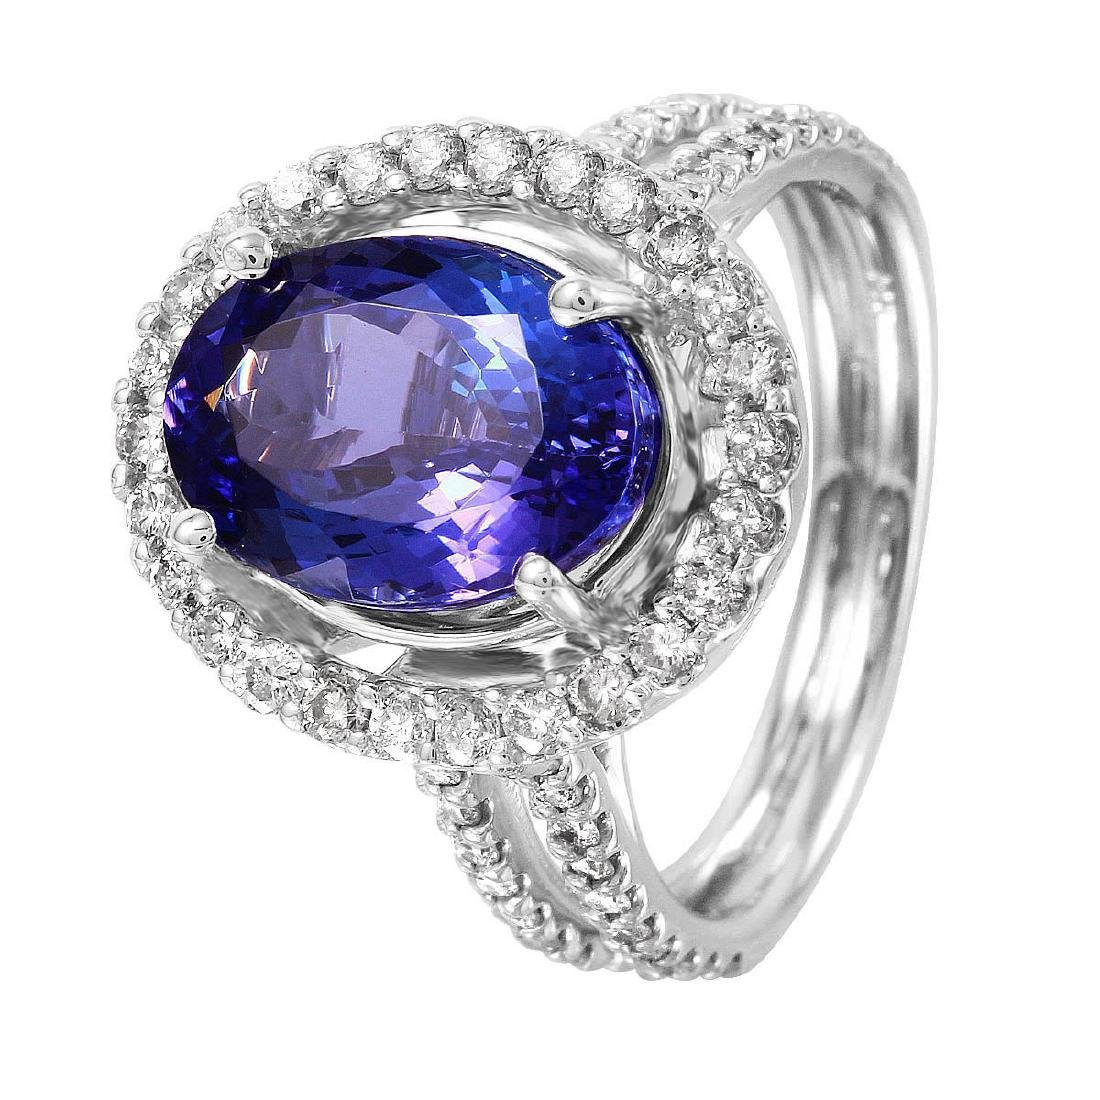 14KT White Gold Tanzanite & Diamond Ring